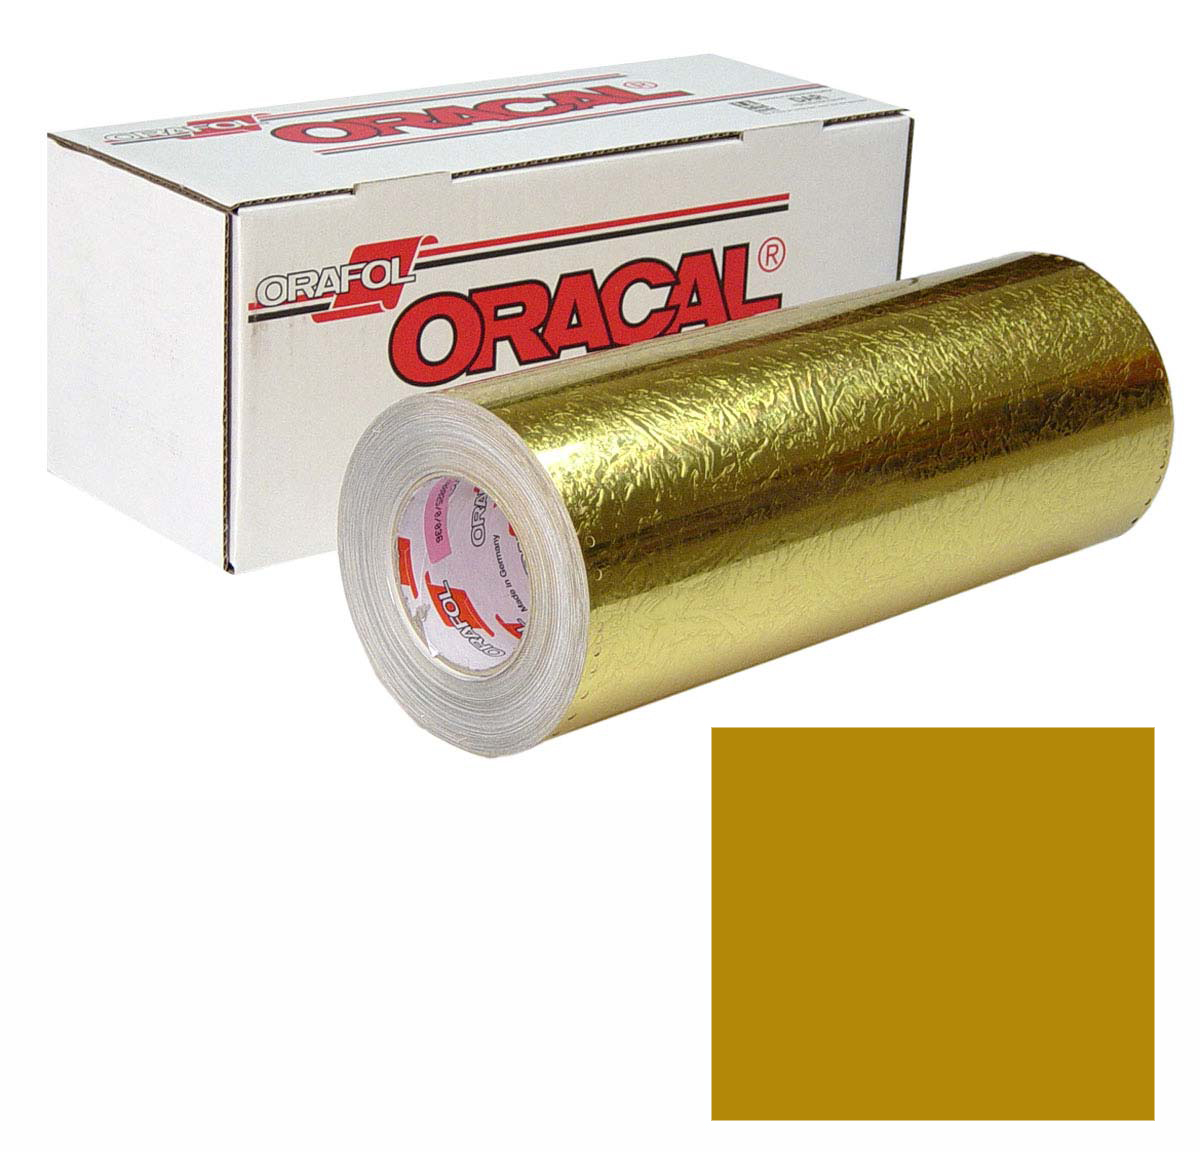 ORACAL 383 Ultraleaf 15In X 10Yd 003-Gold